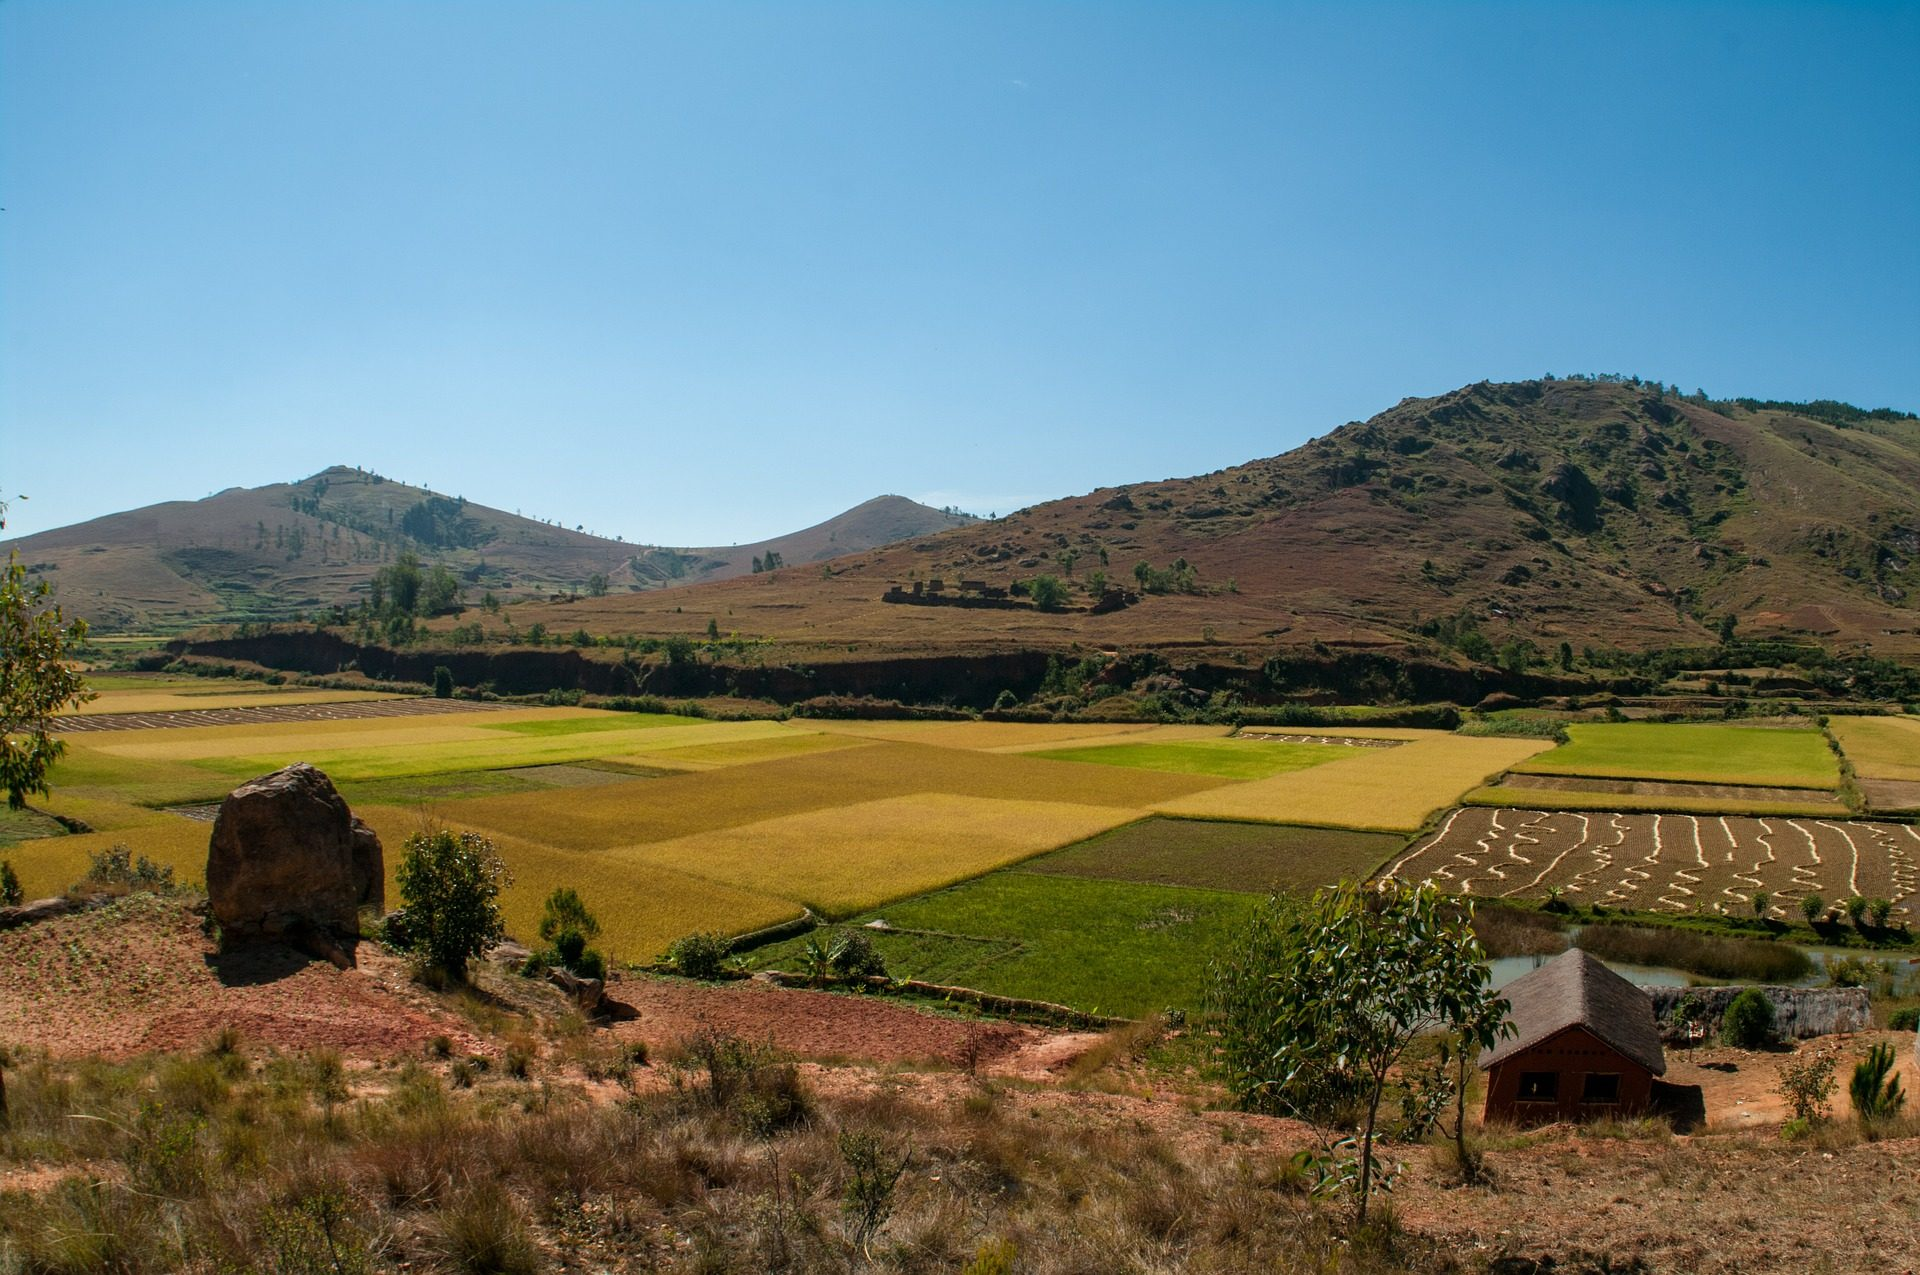 Madagascar countryside